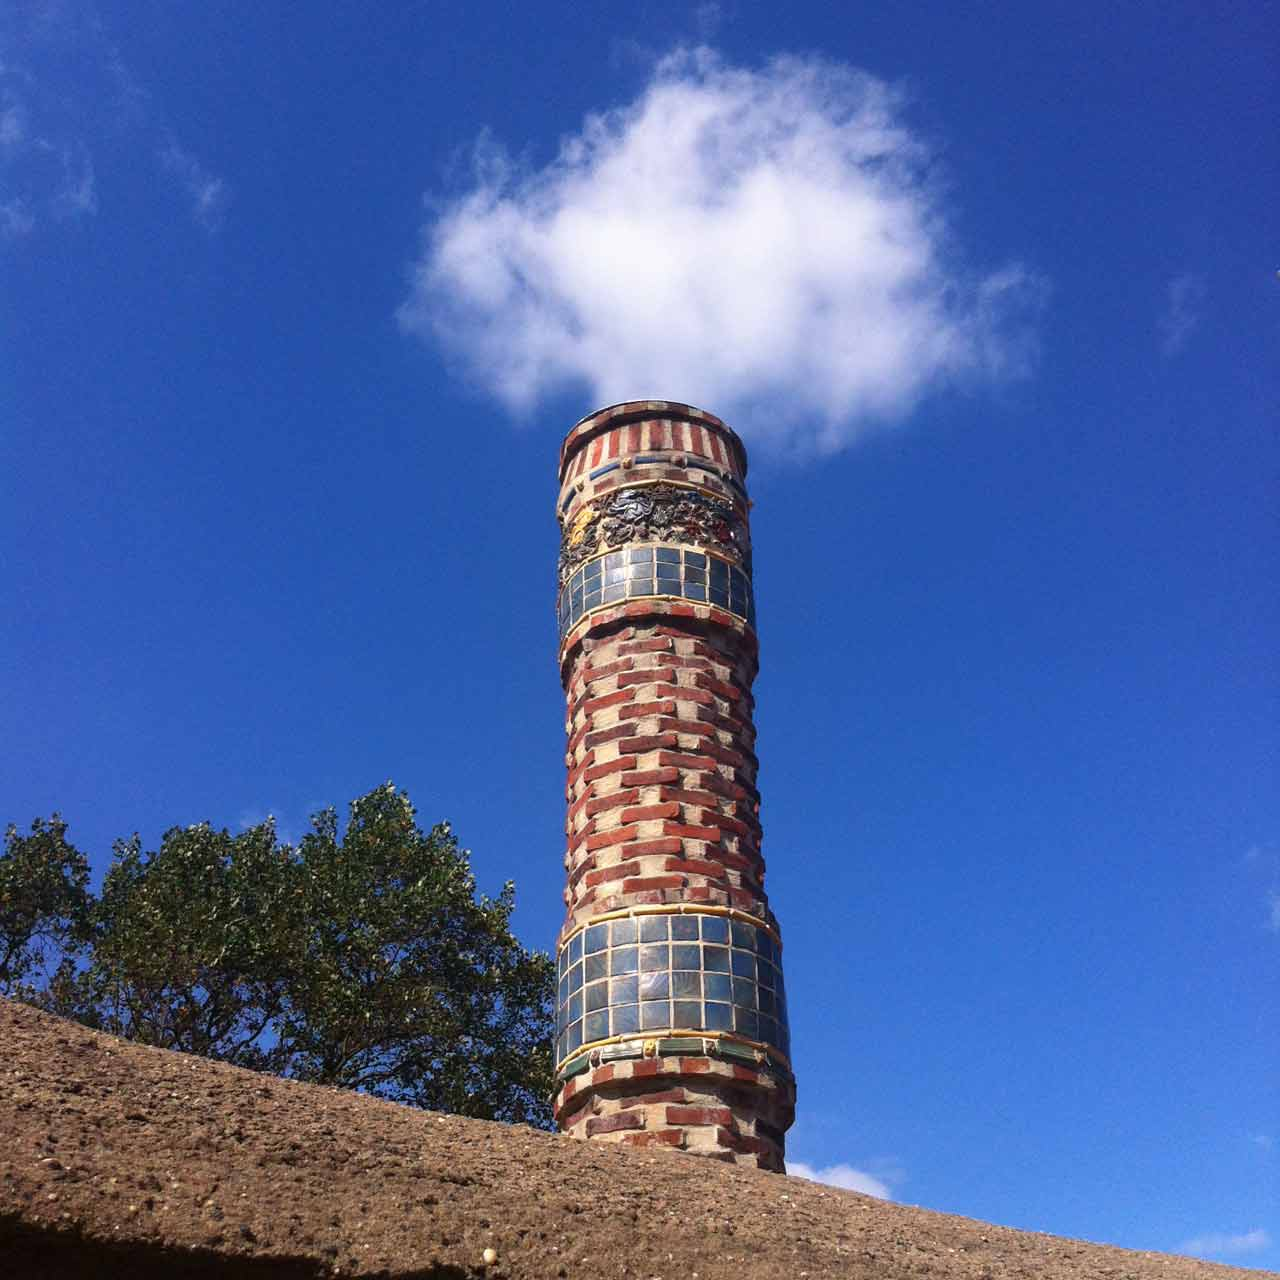 Detail of one of the chimneys featuring original tile work.